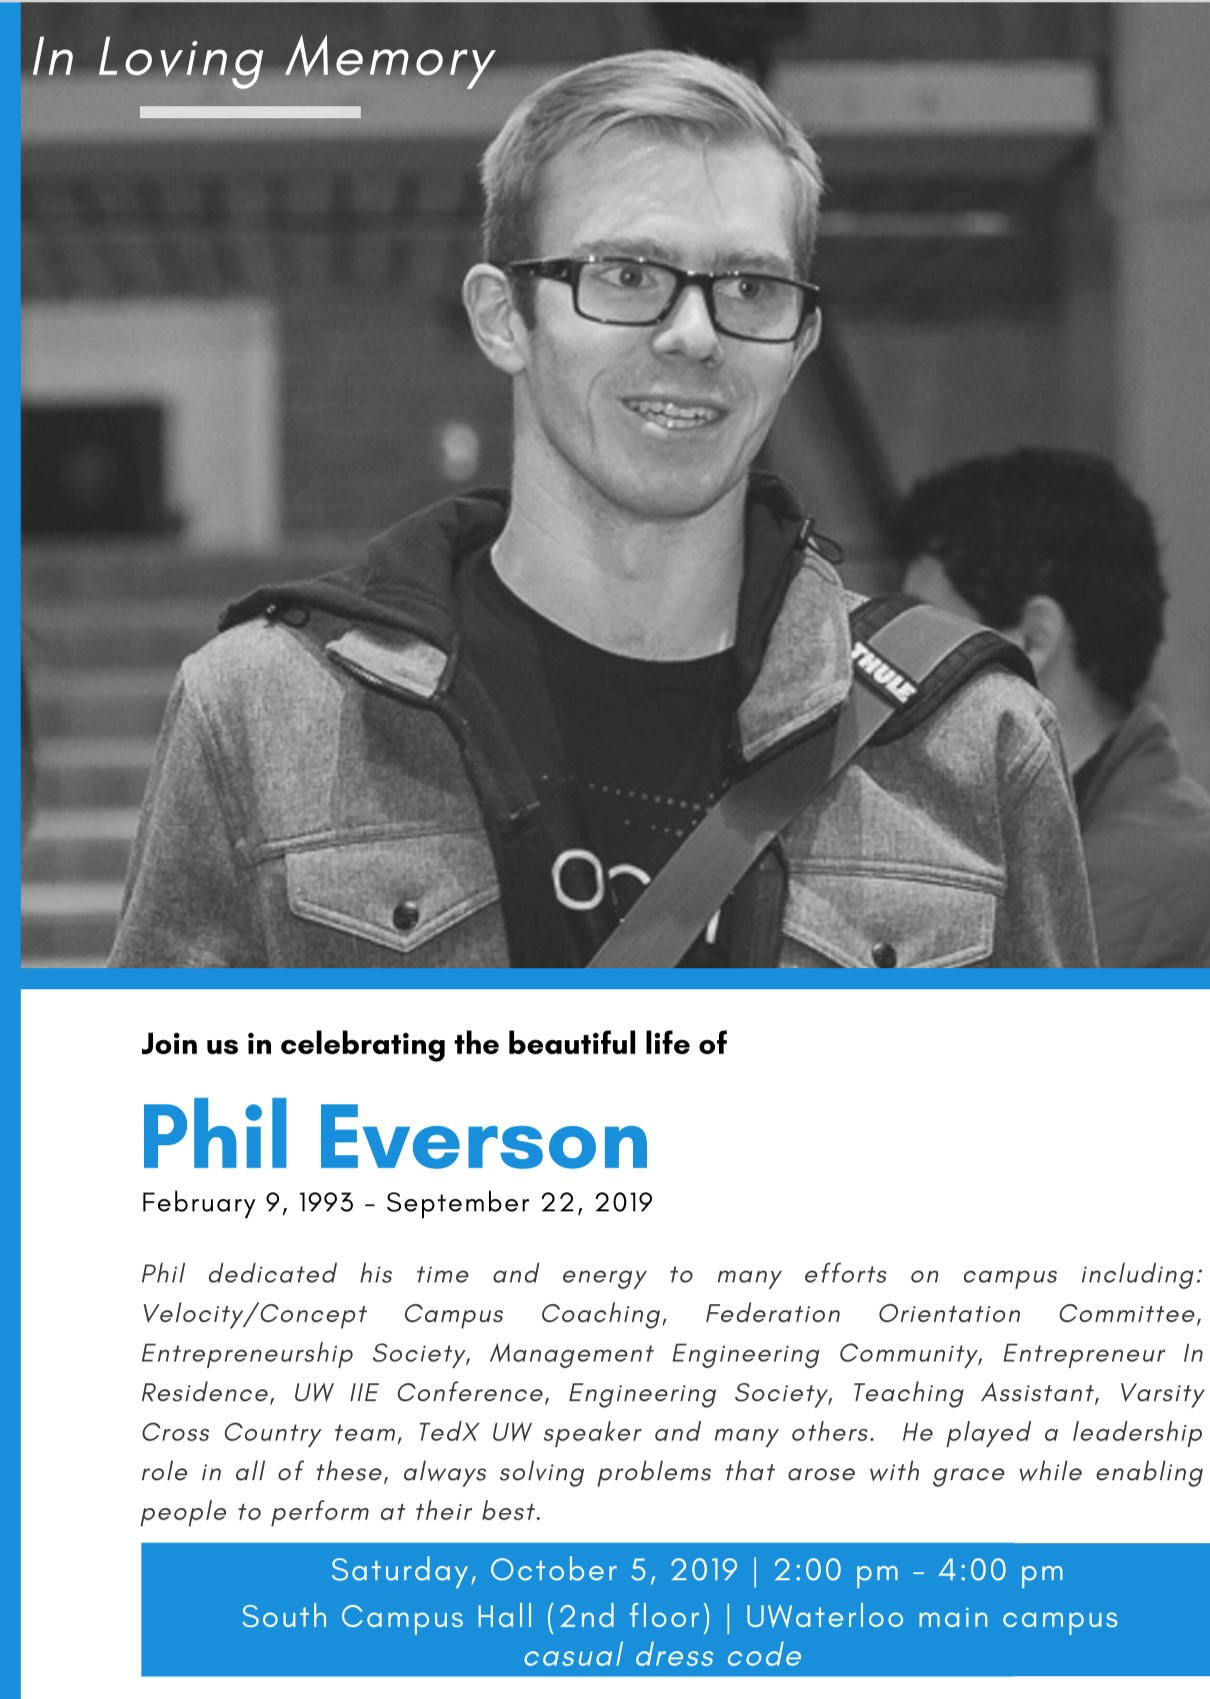 Memorial event for Phil Everson